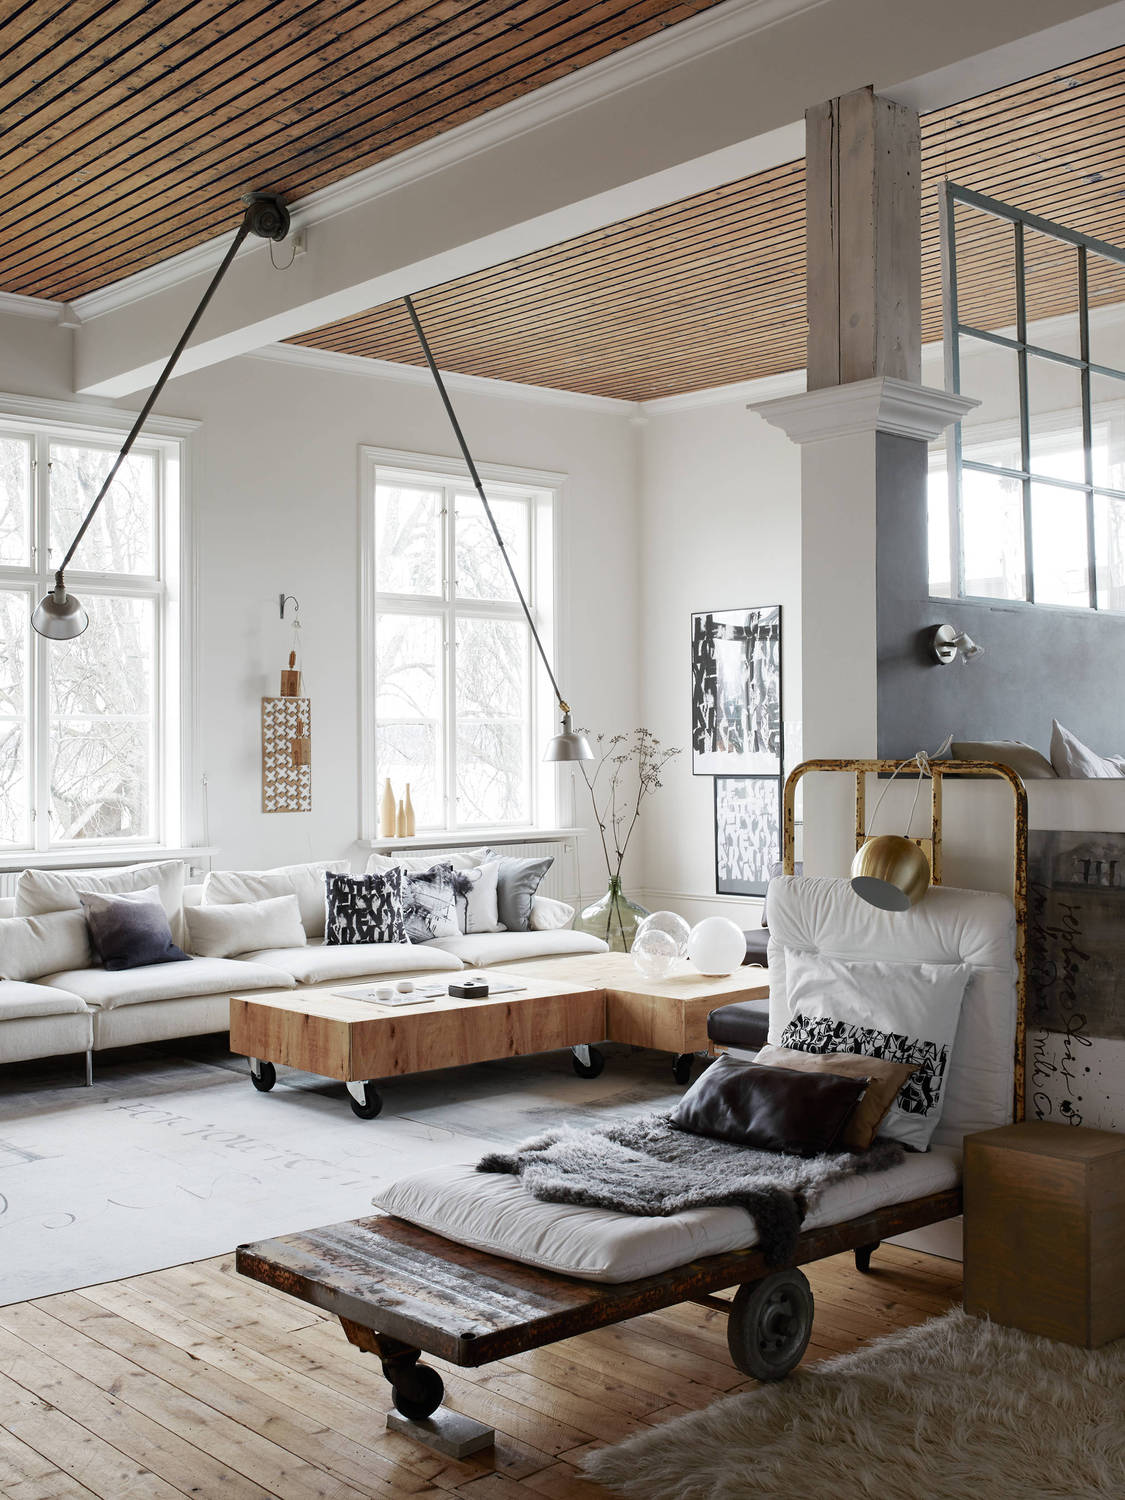 Yvla Skarp's home - via cocolapinedesign.com